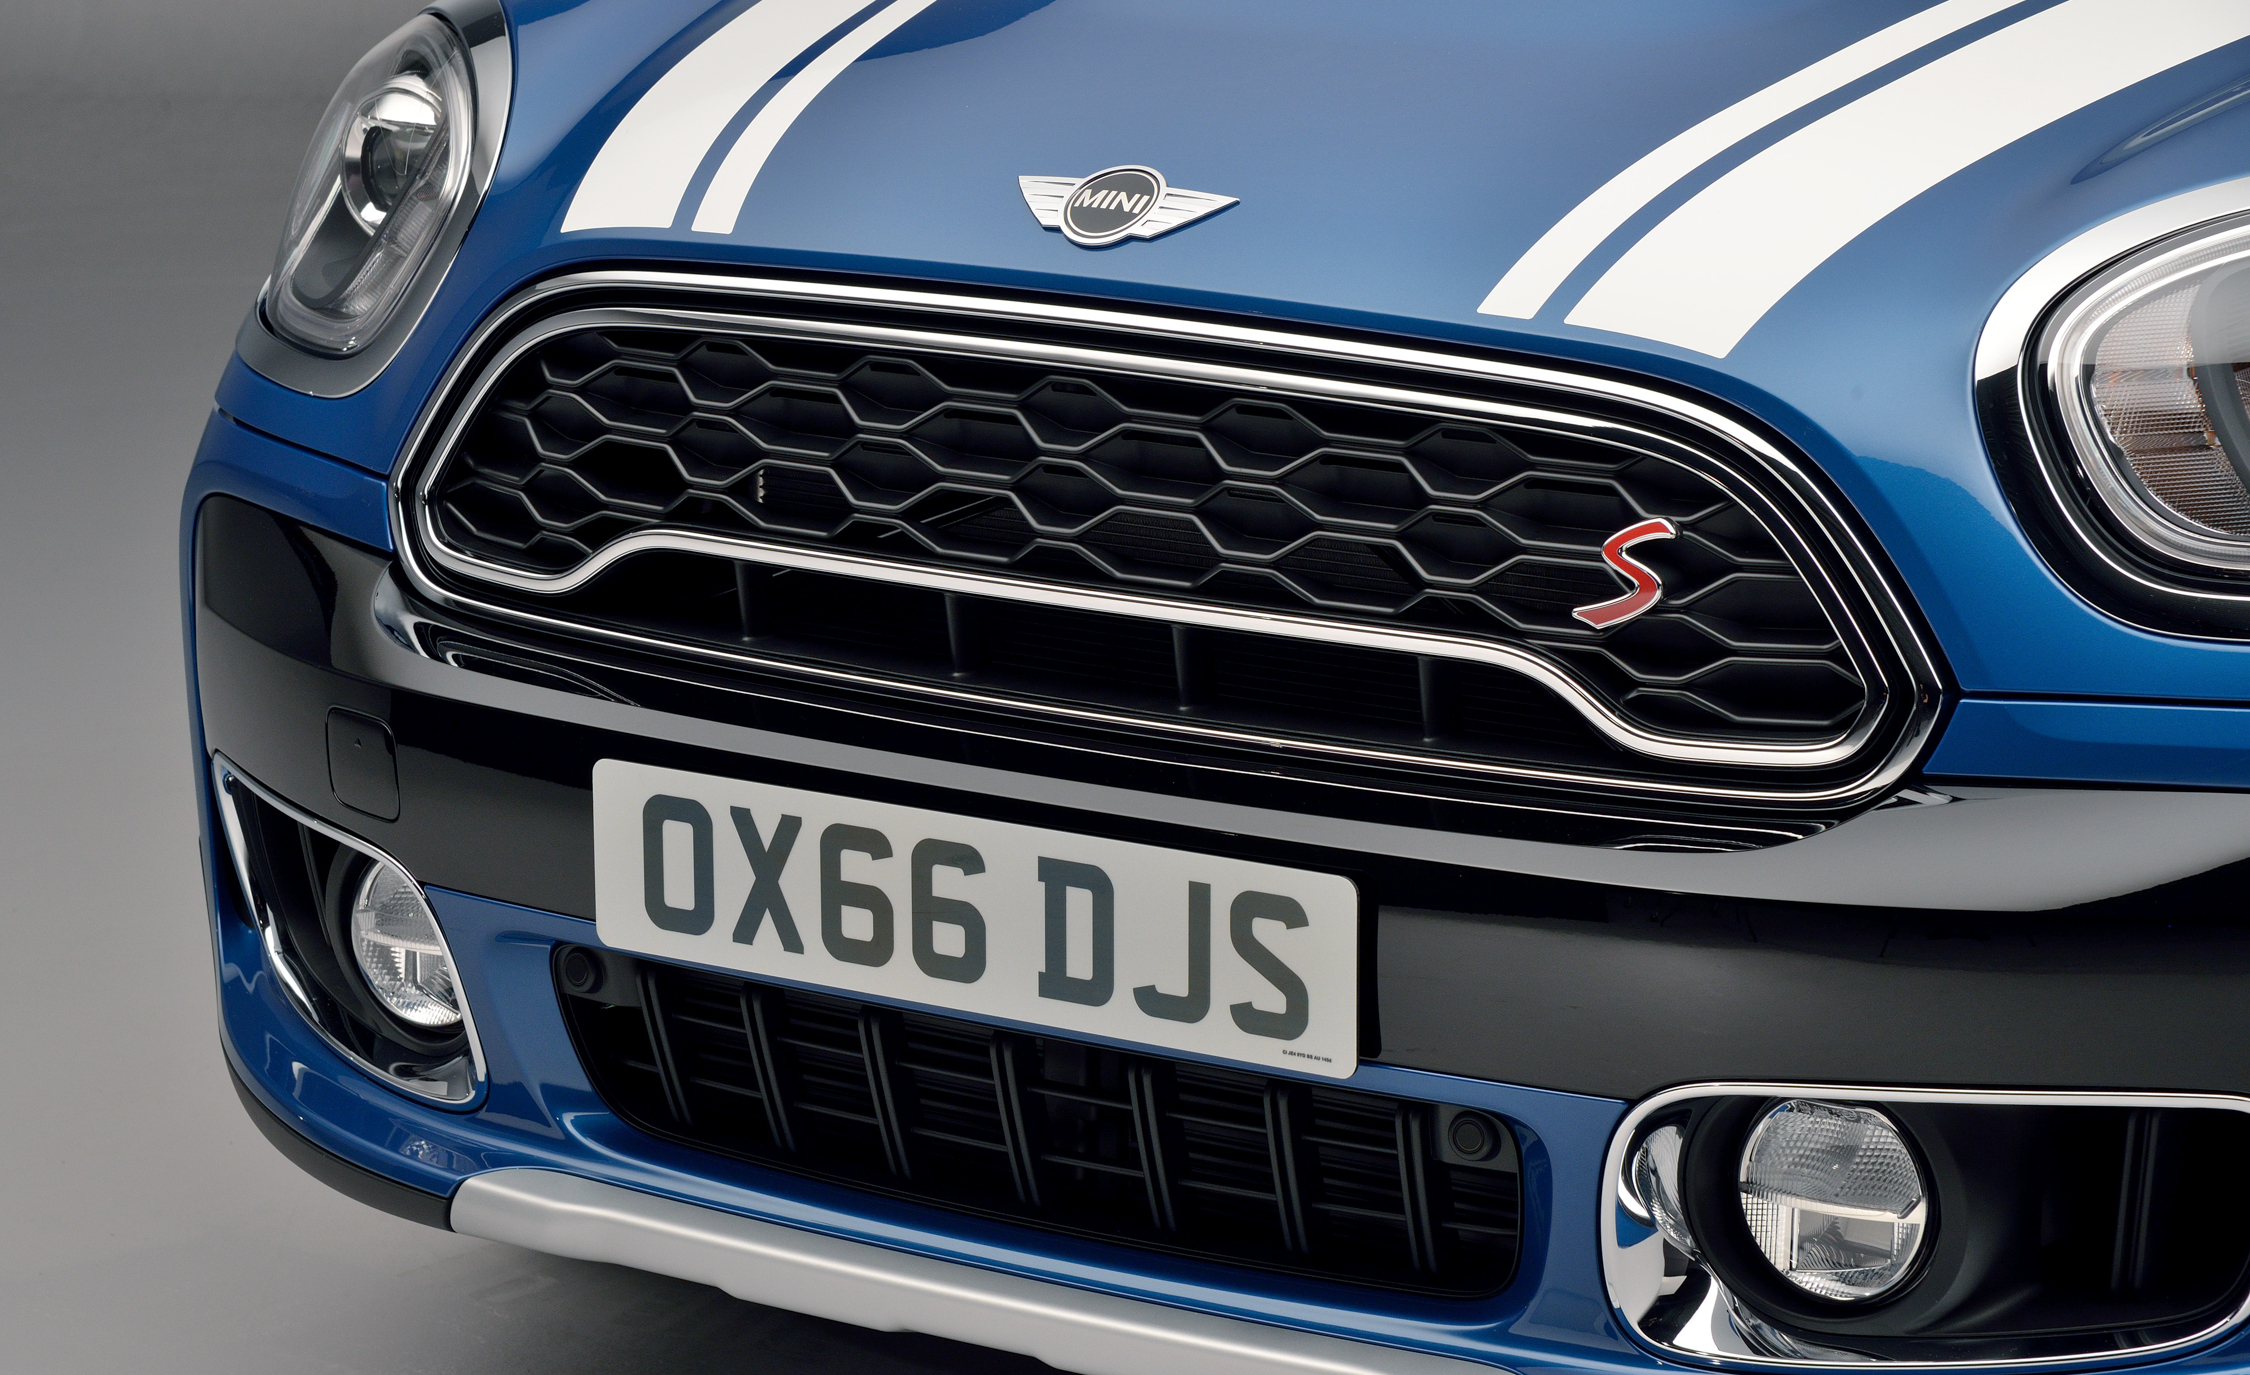 2017 Mini Cooper S Countryman Exterior View Front Bumper And Grille (Photo 9 of 61)